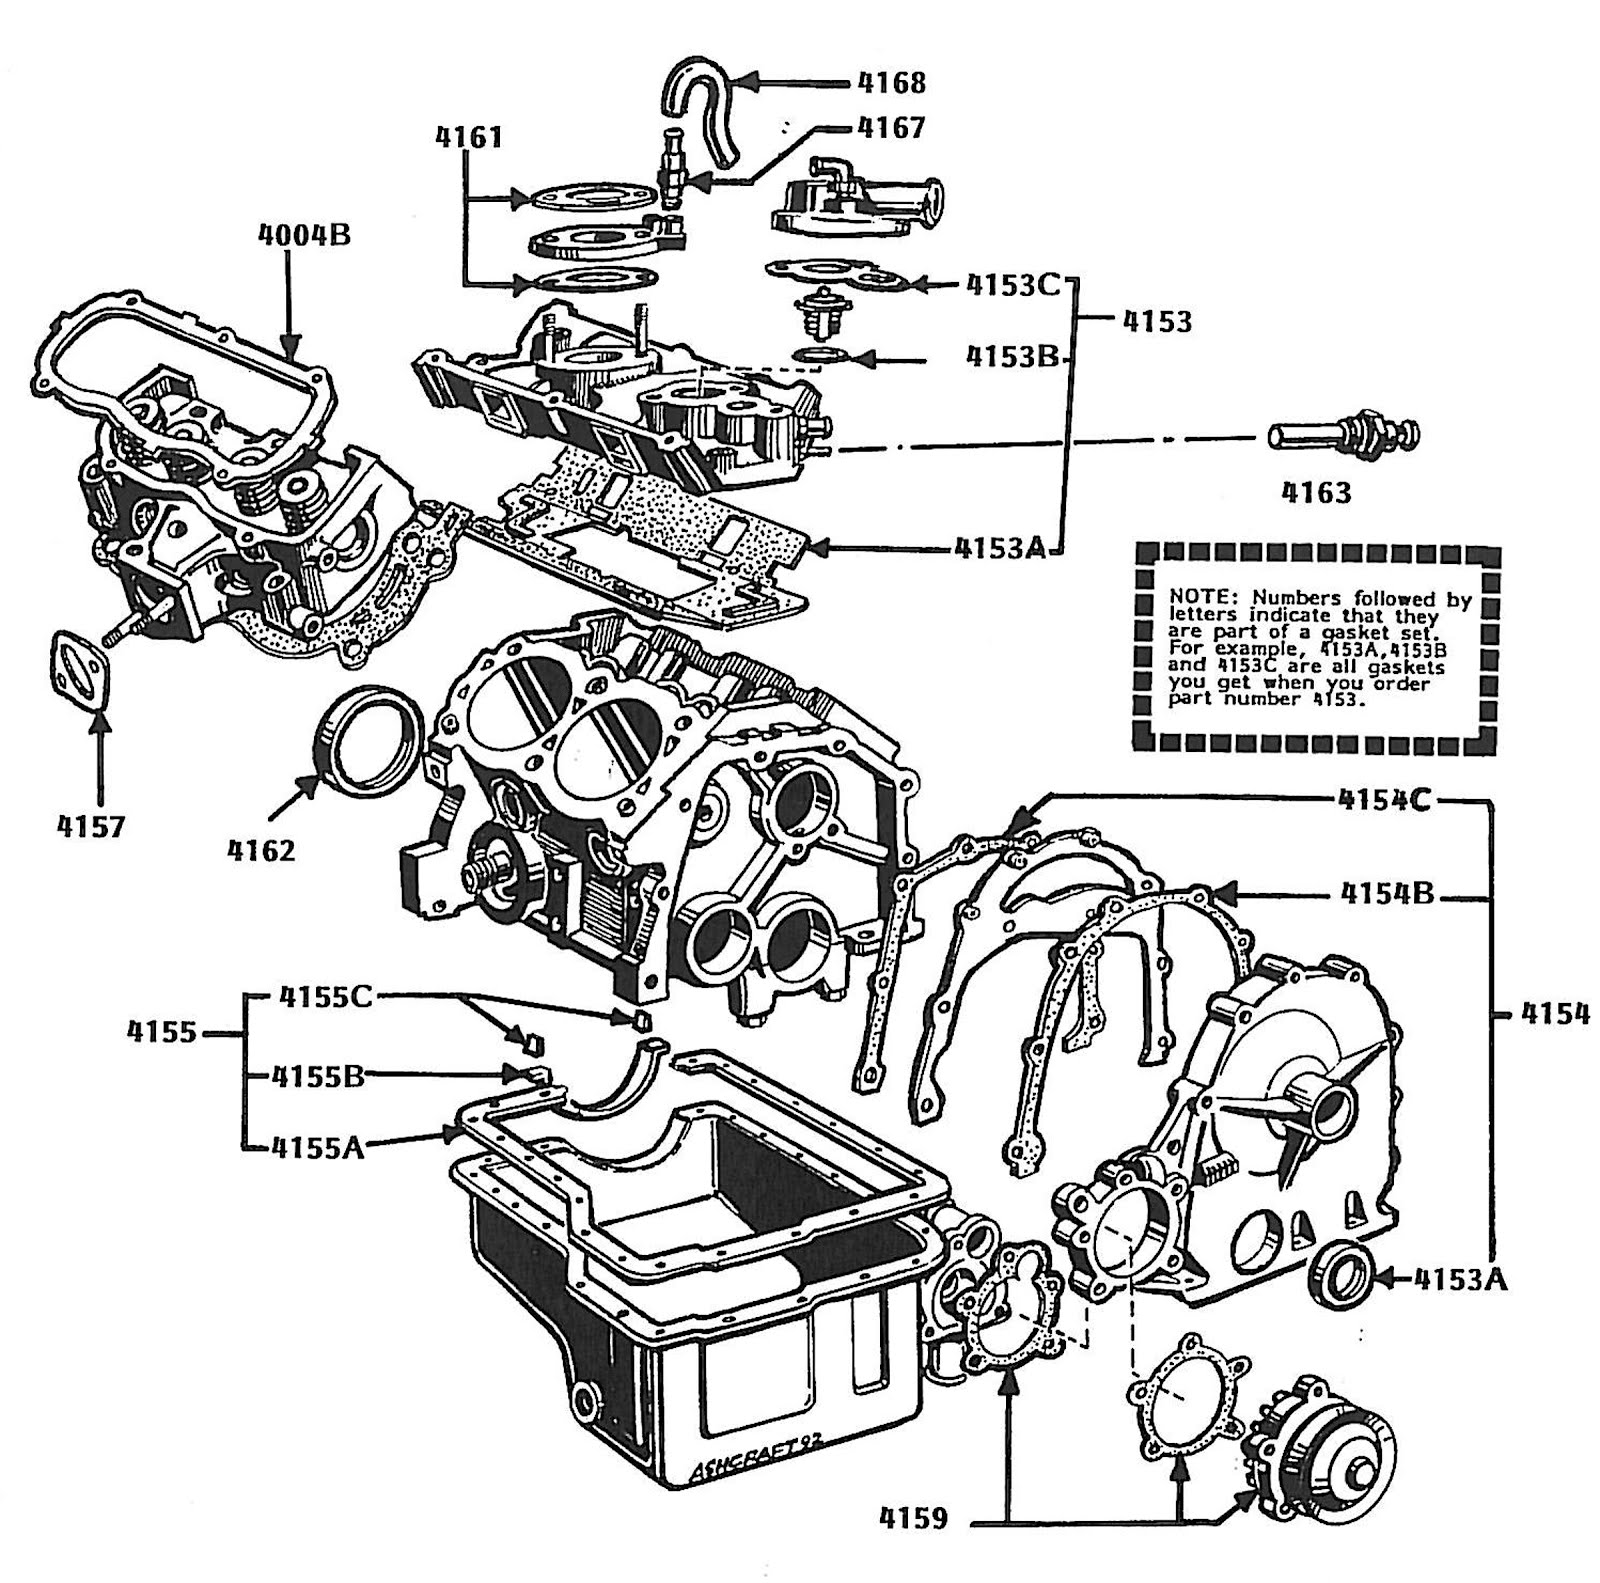 saab engine diagrams free vehicle wiring diagrams u2022 rh addone tw Saab 2.3 Engine Diagram Saab 900 Engine Diagram